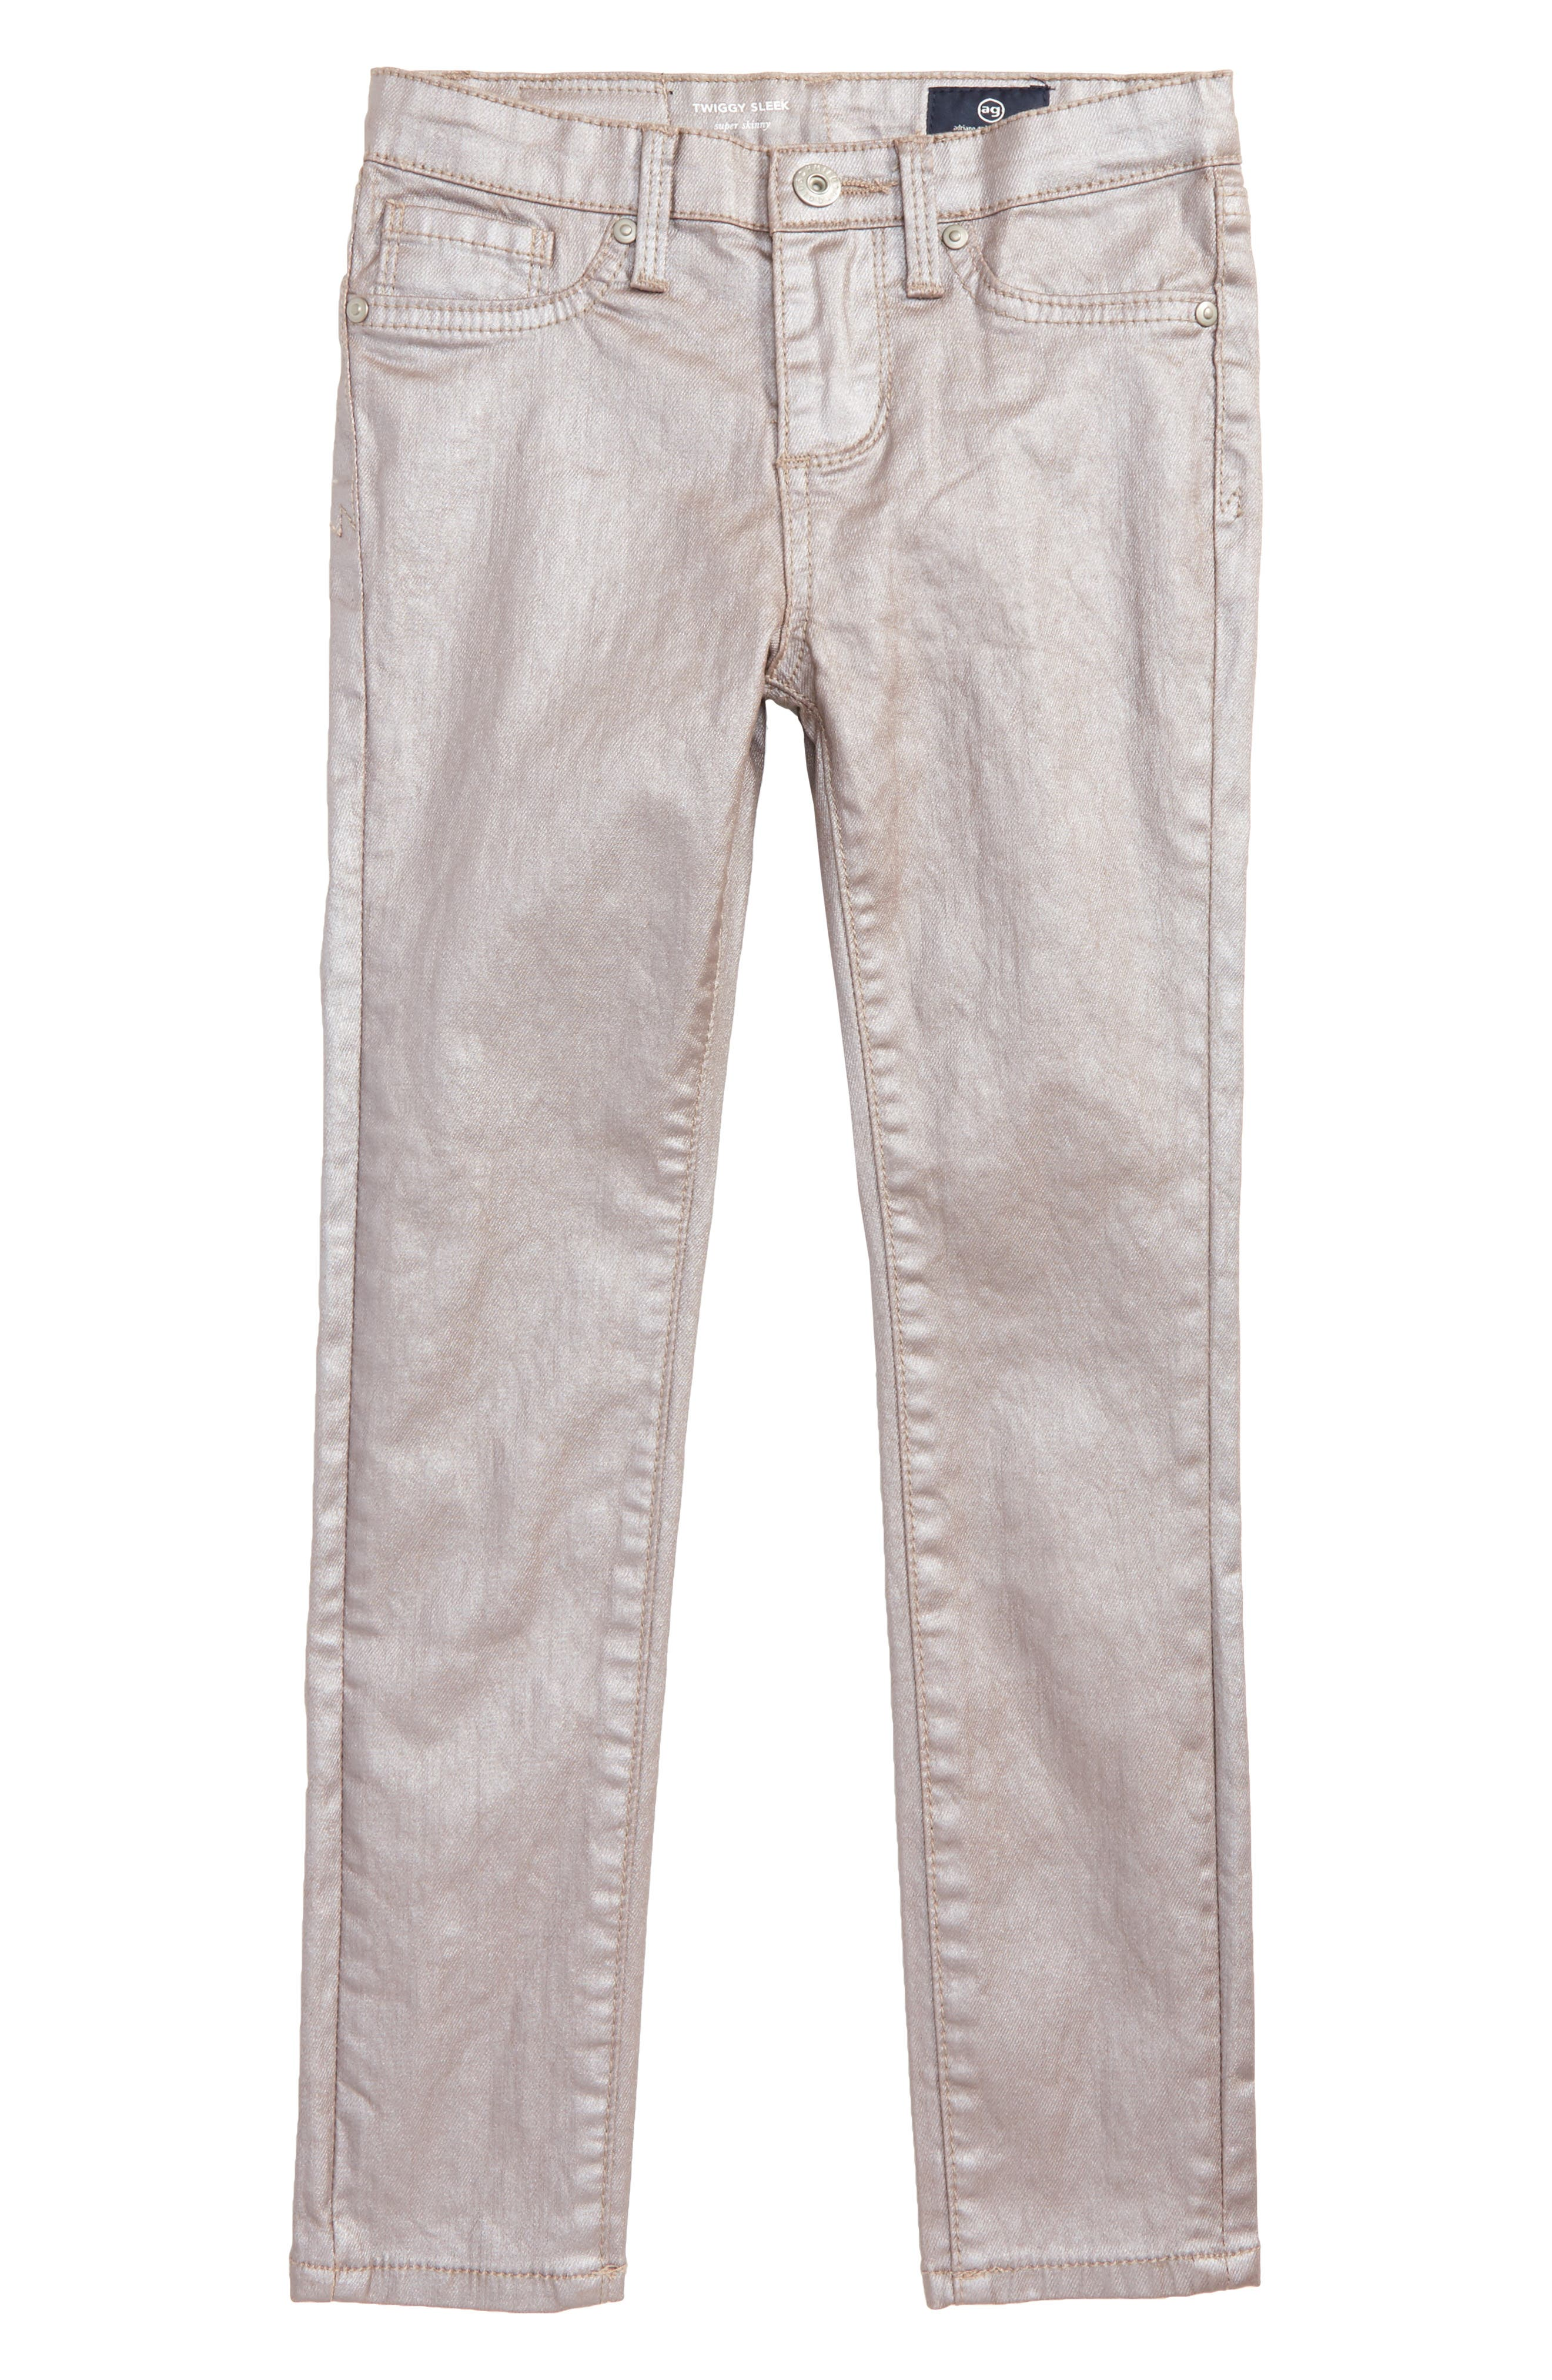 Alternate Image 1 Selected - ag adriano goldschmied kids The Sleek Twiggy Skinny Ankle Jeans (Toddler Girls & Little Girls)